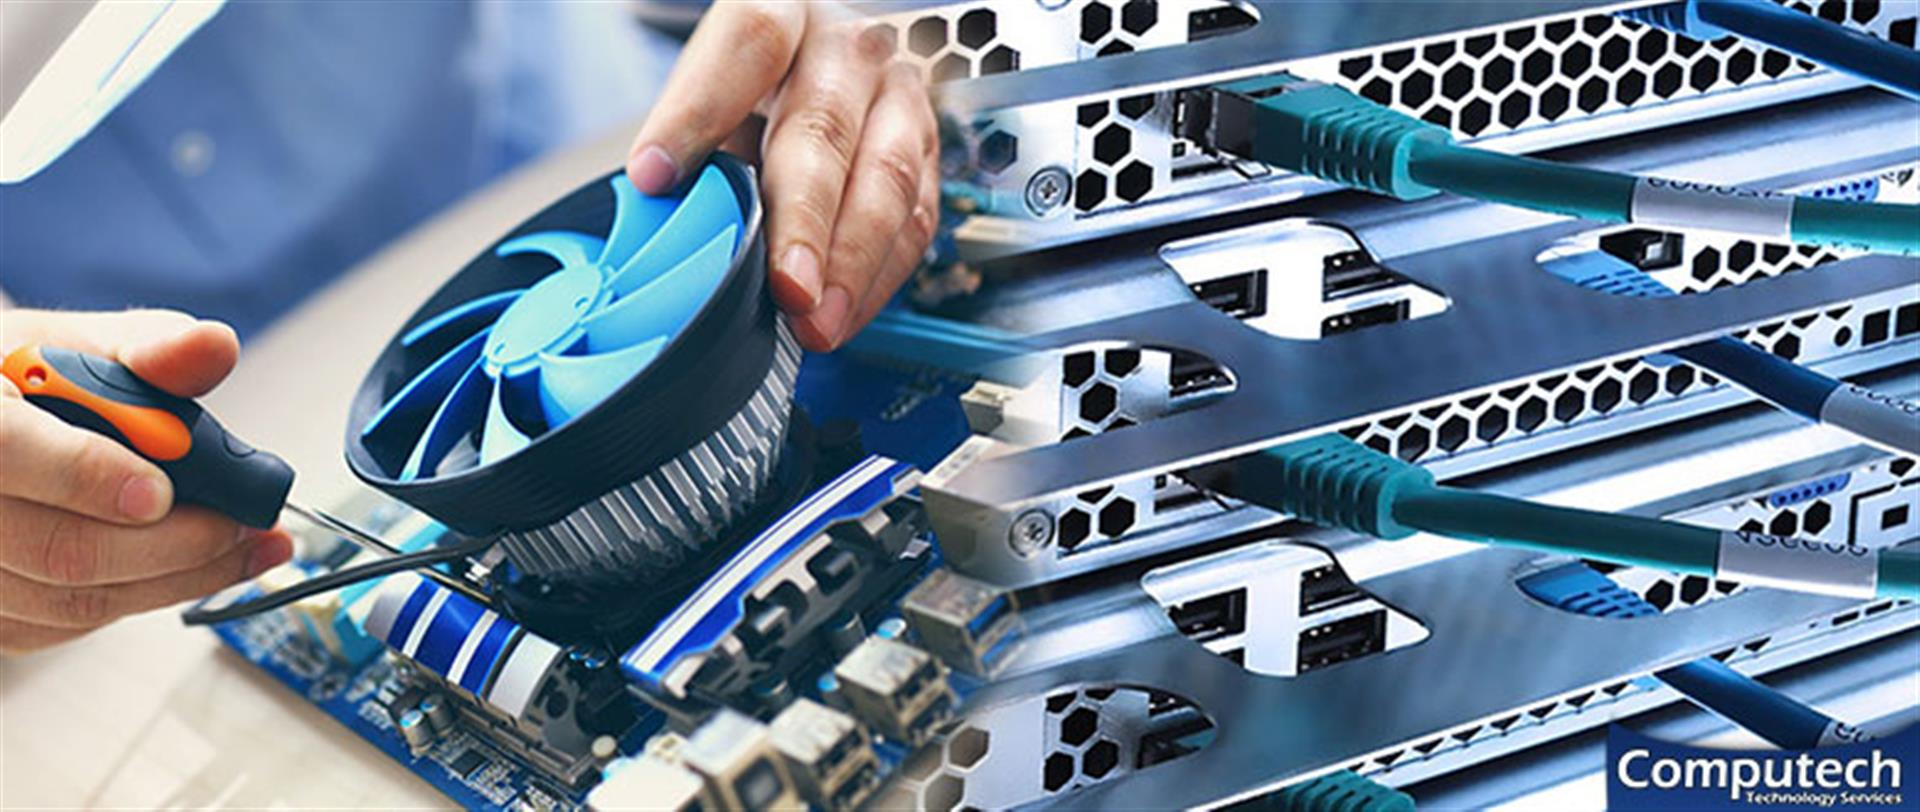 Jackson Alabama Onsite Computer & Printer Repairs, Network, Telecom & Data Inside Wiring Services